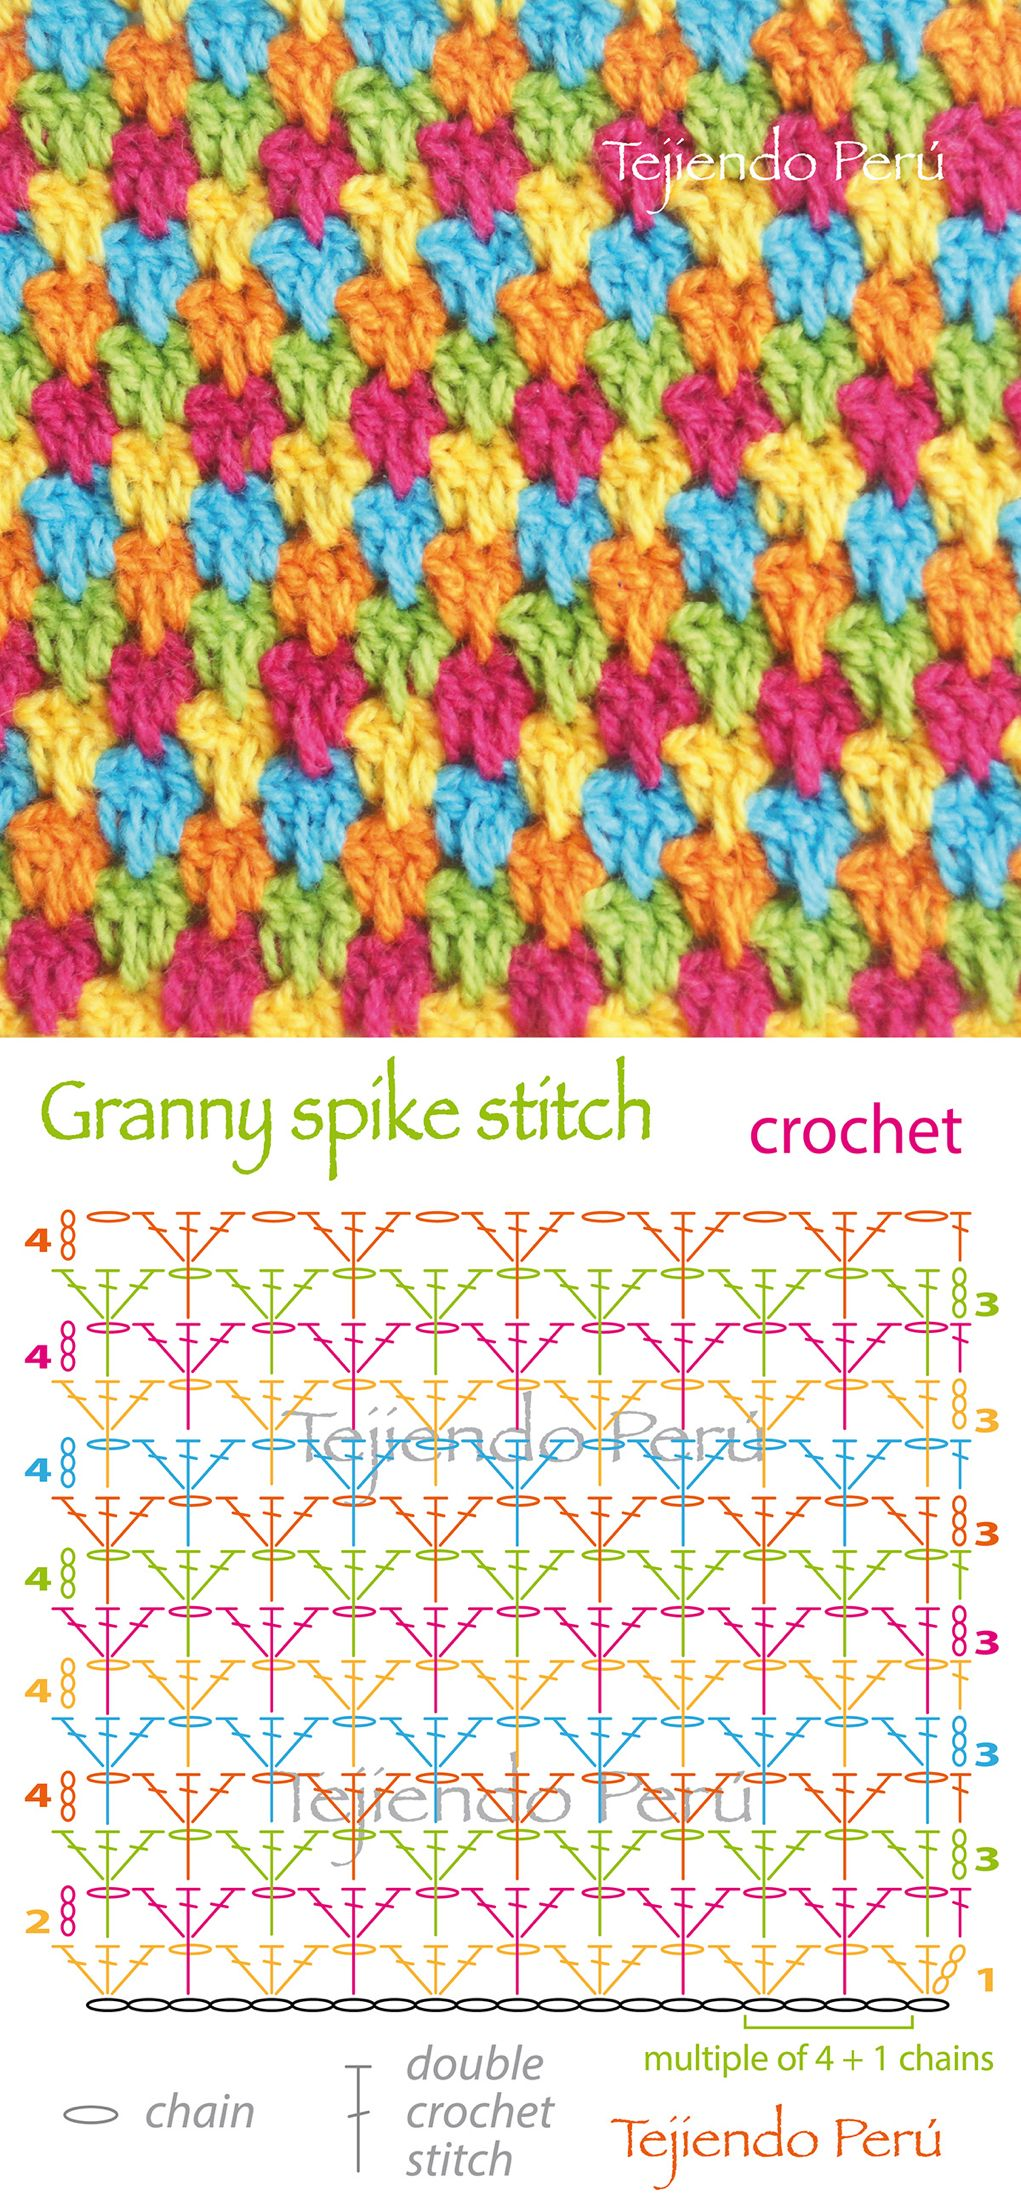 Crochet Double Stitch Diagram : Crochet: granny spike stitch diagram! Puntos fantas?a en ...